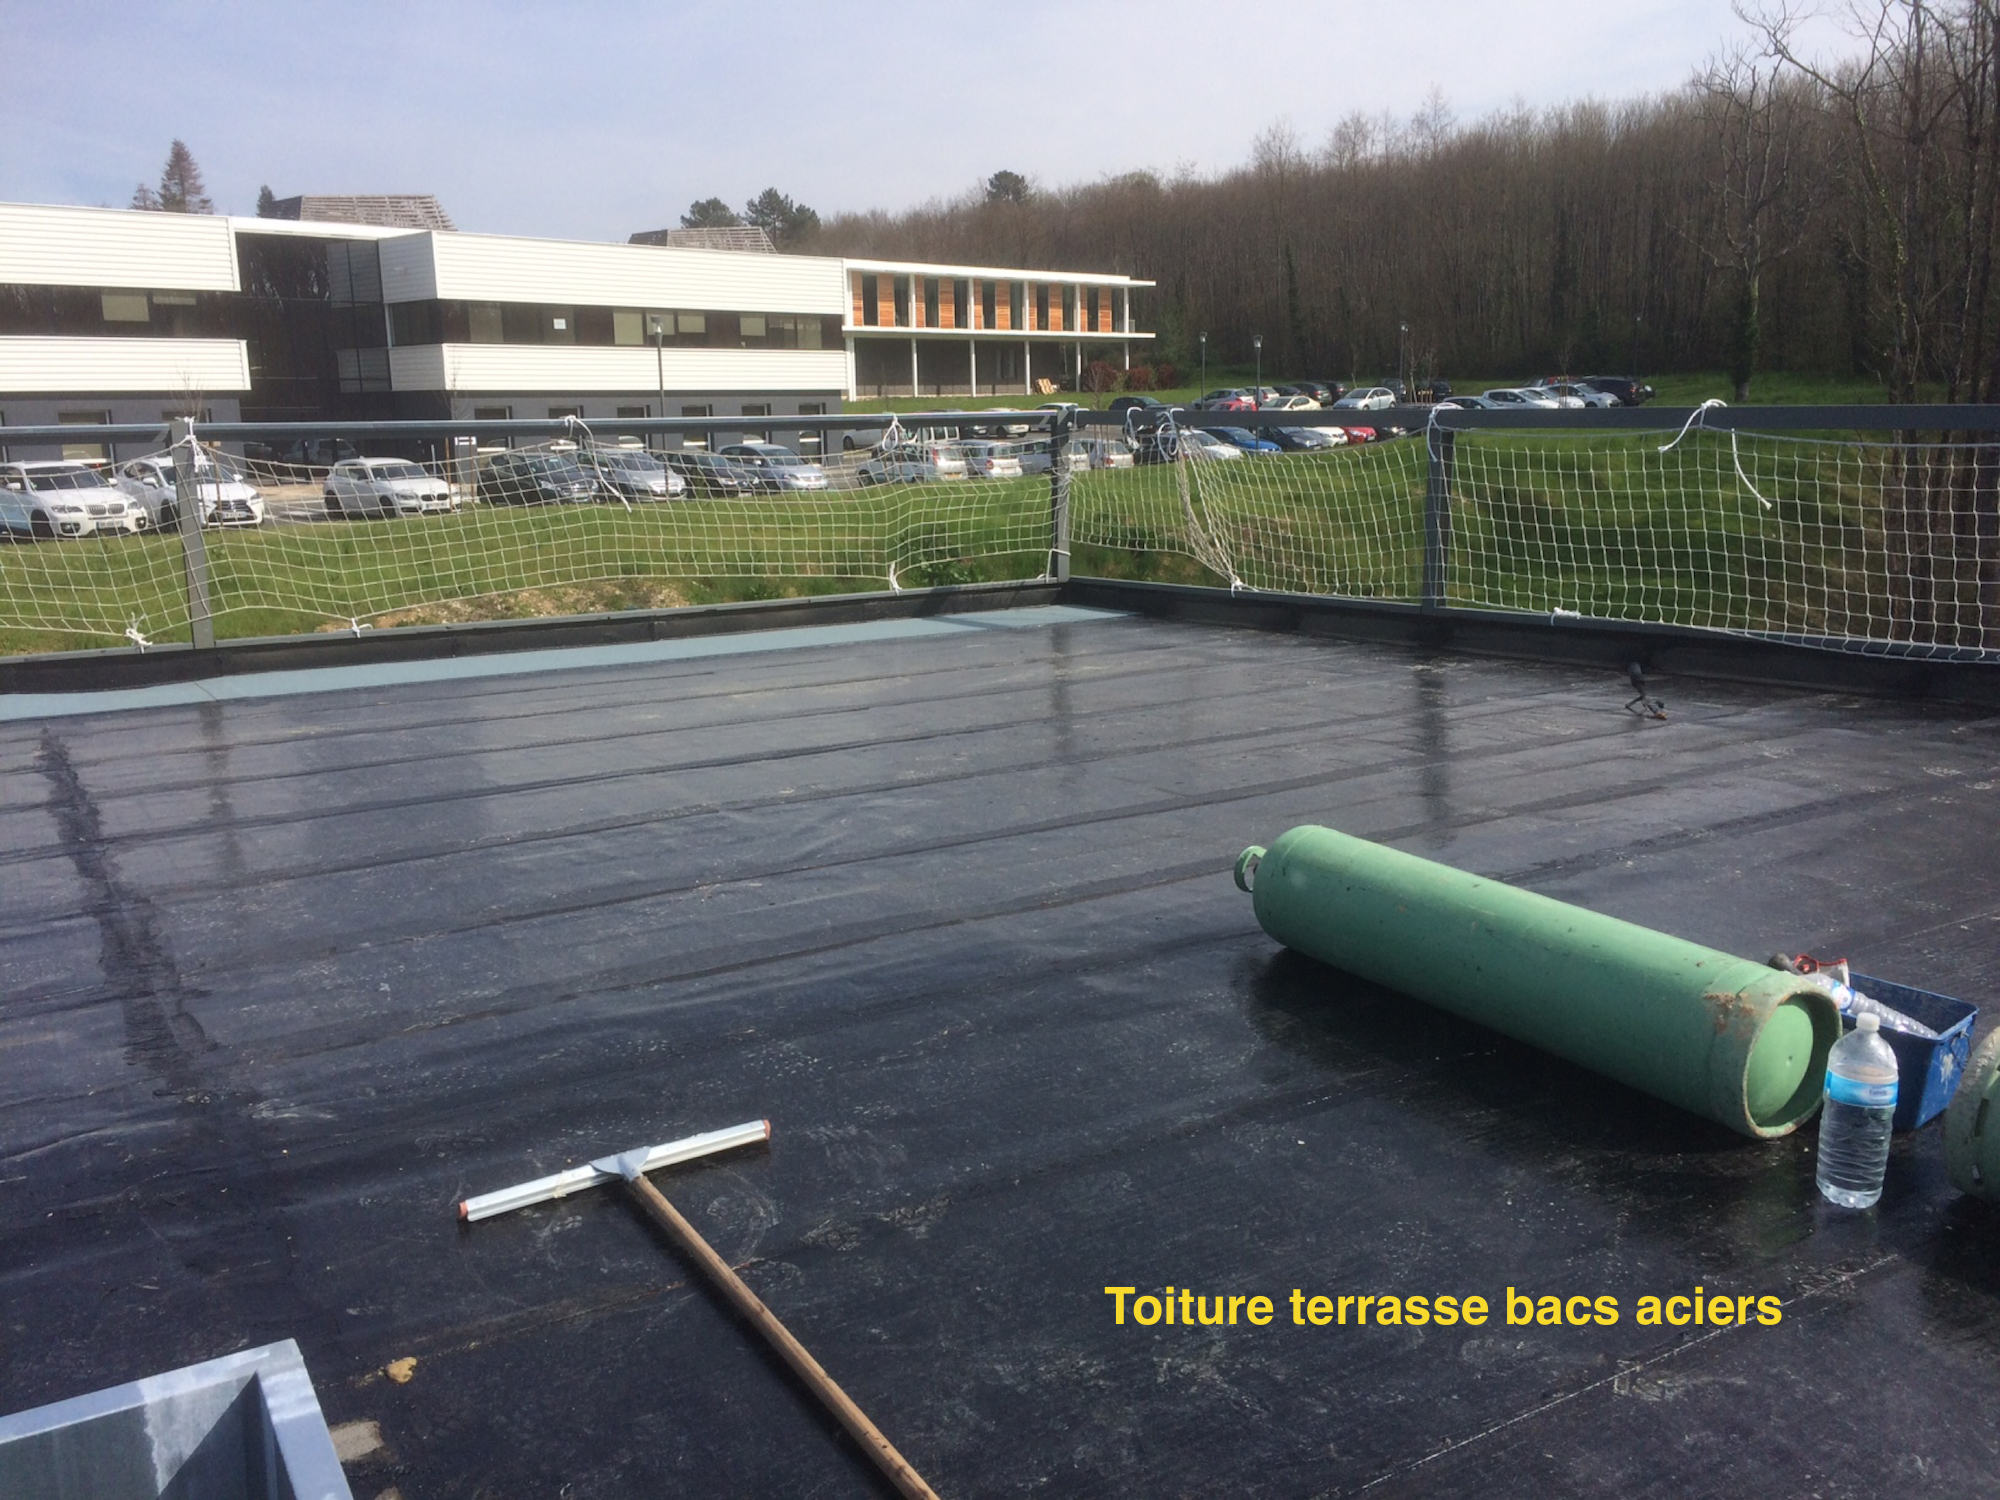 Toiture terrasse inaccessible - FROIDEFOND ETANCHEITE